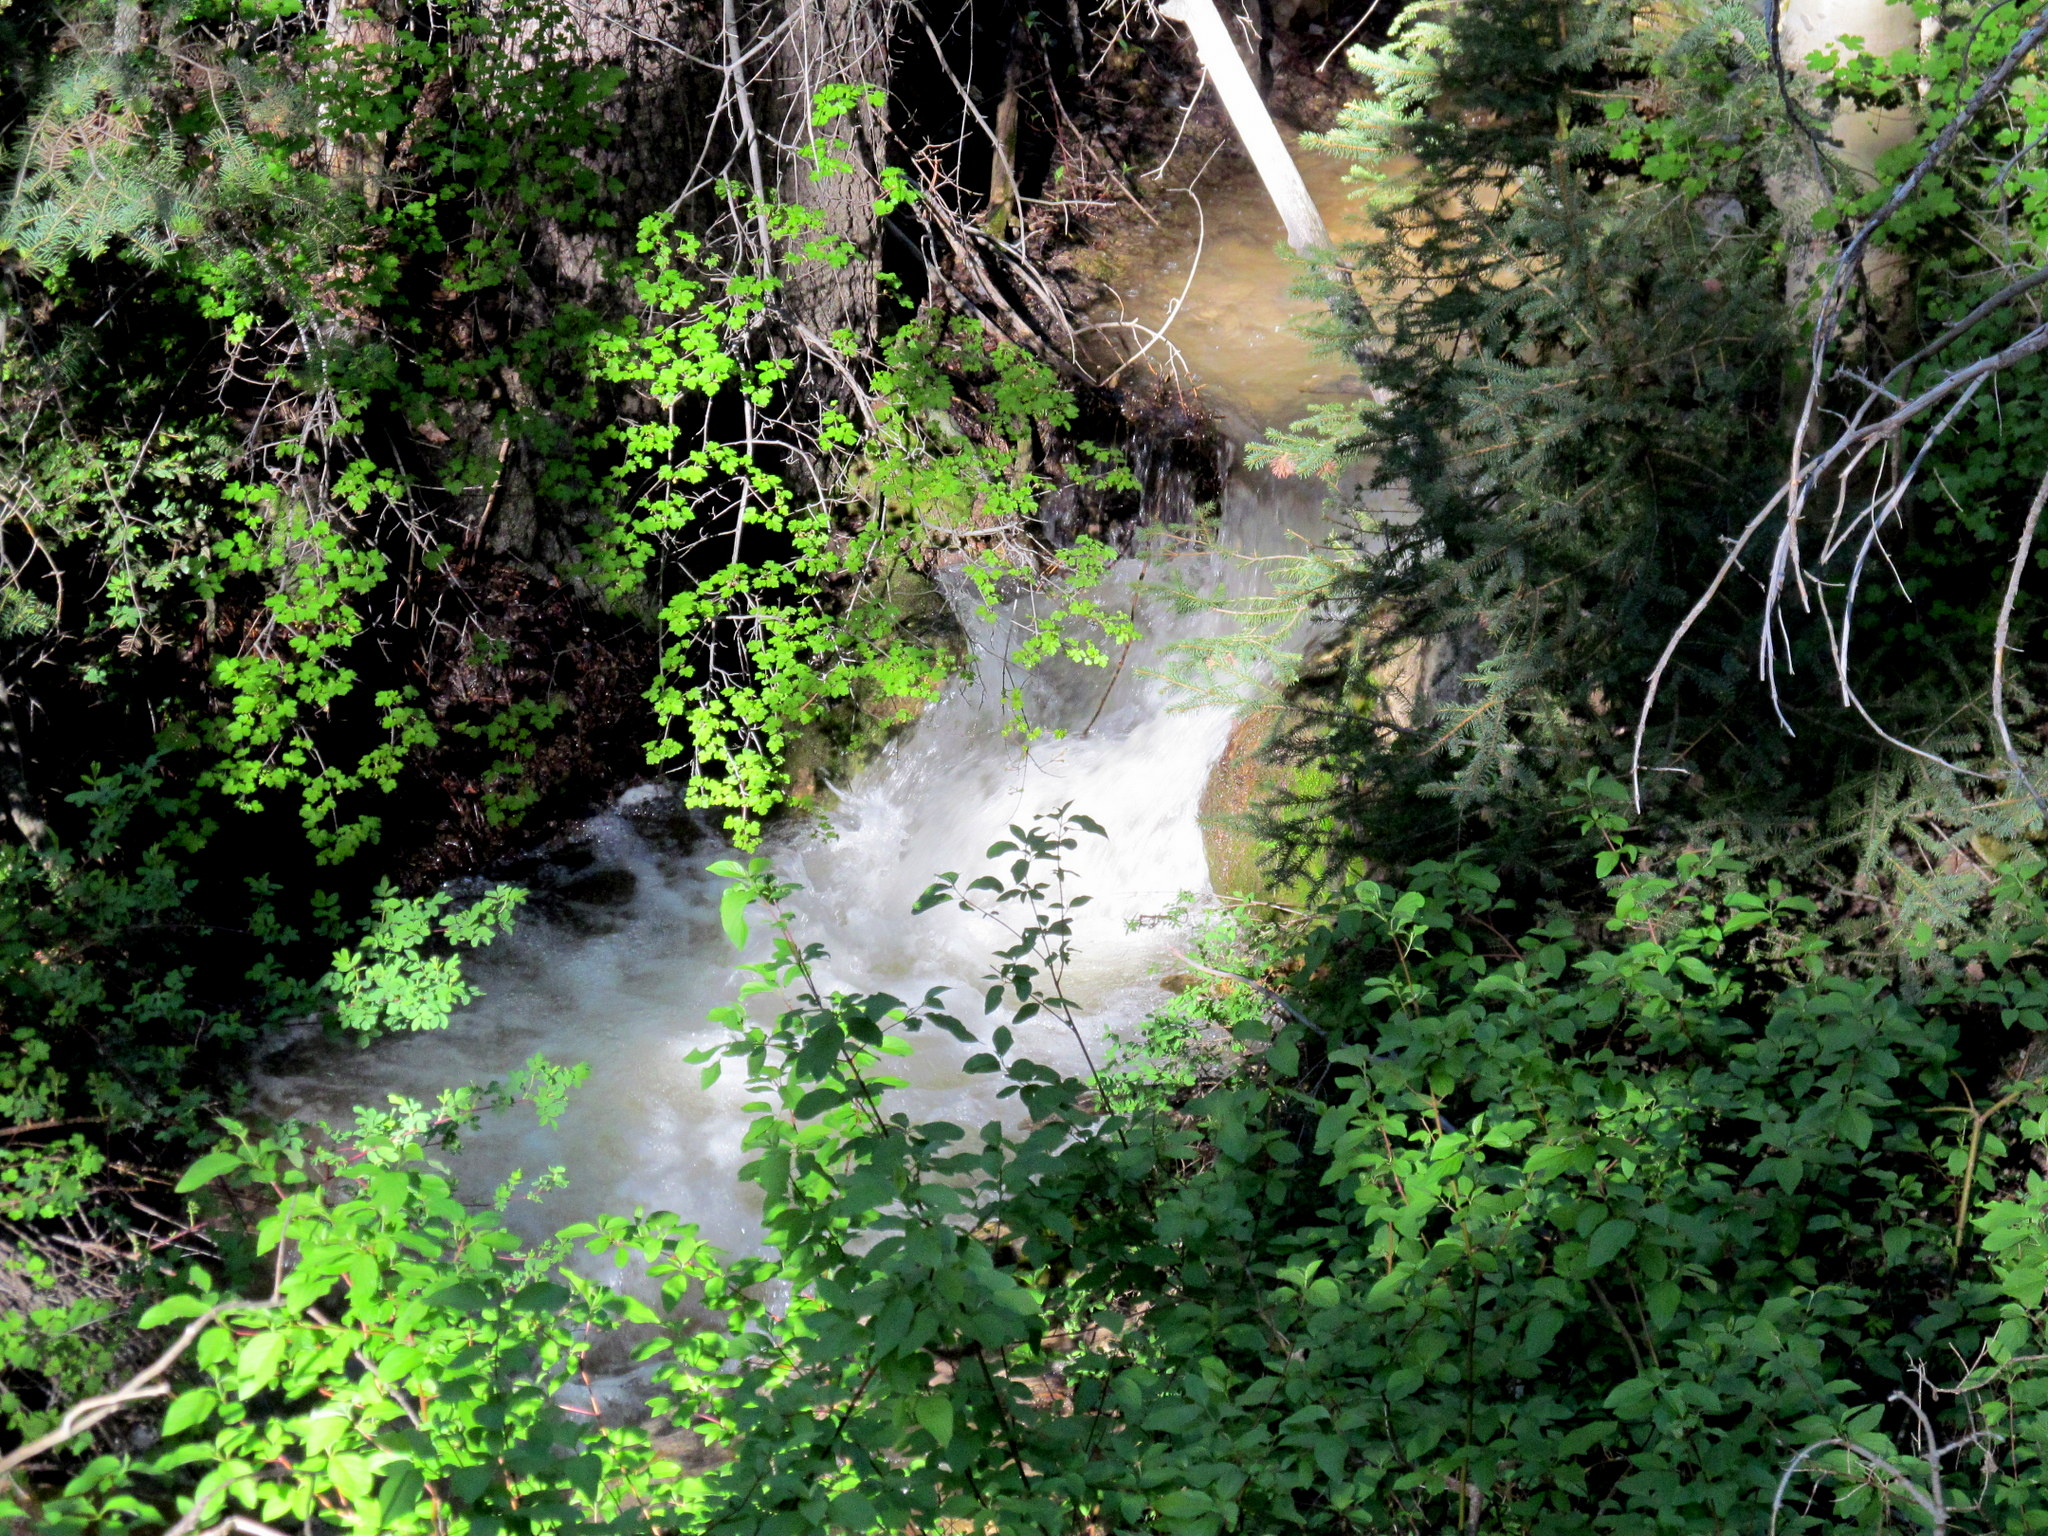 Photo: Mill Fork Canyon stream